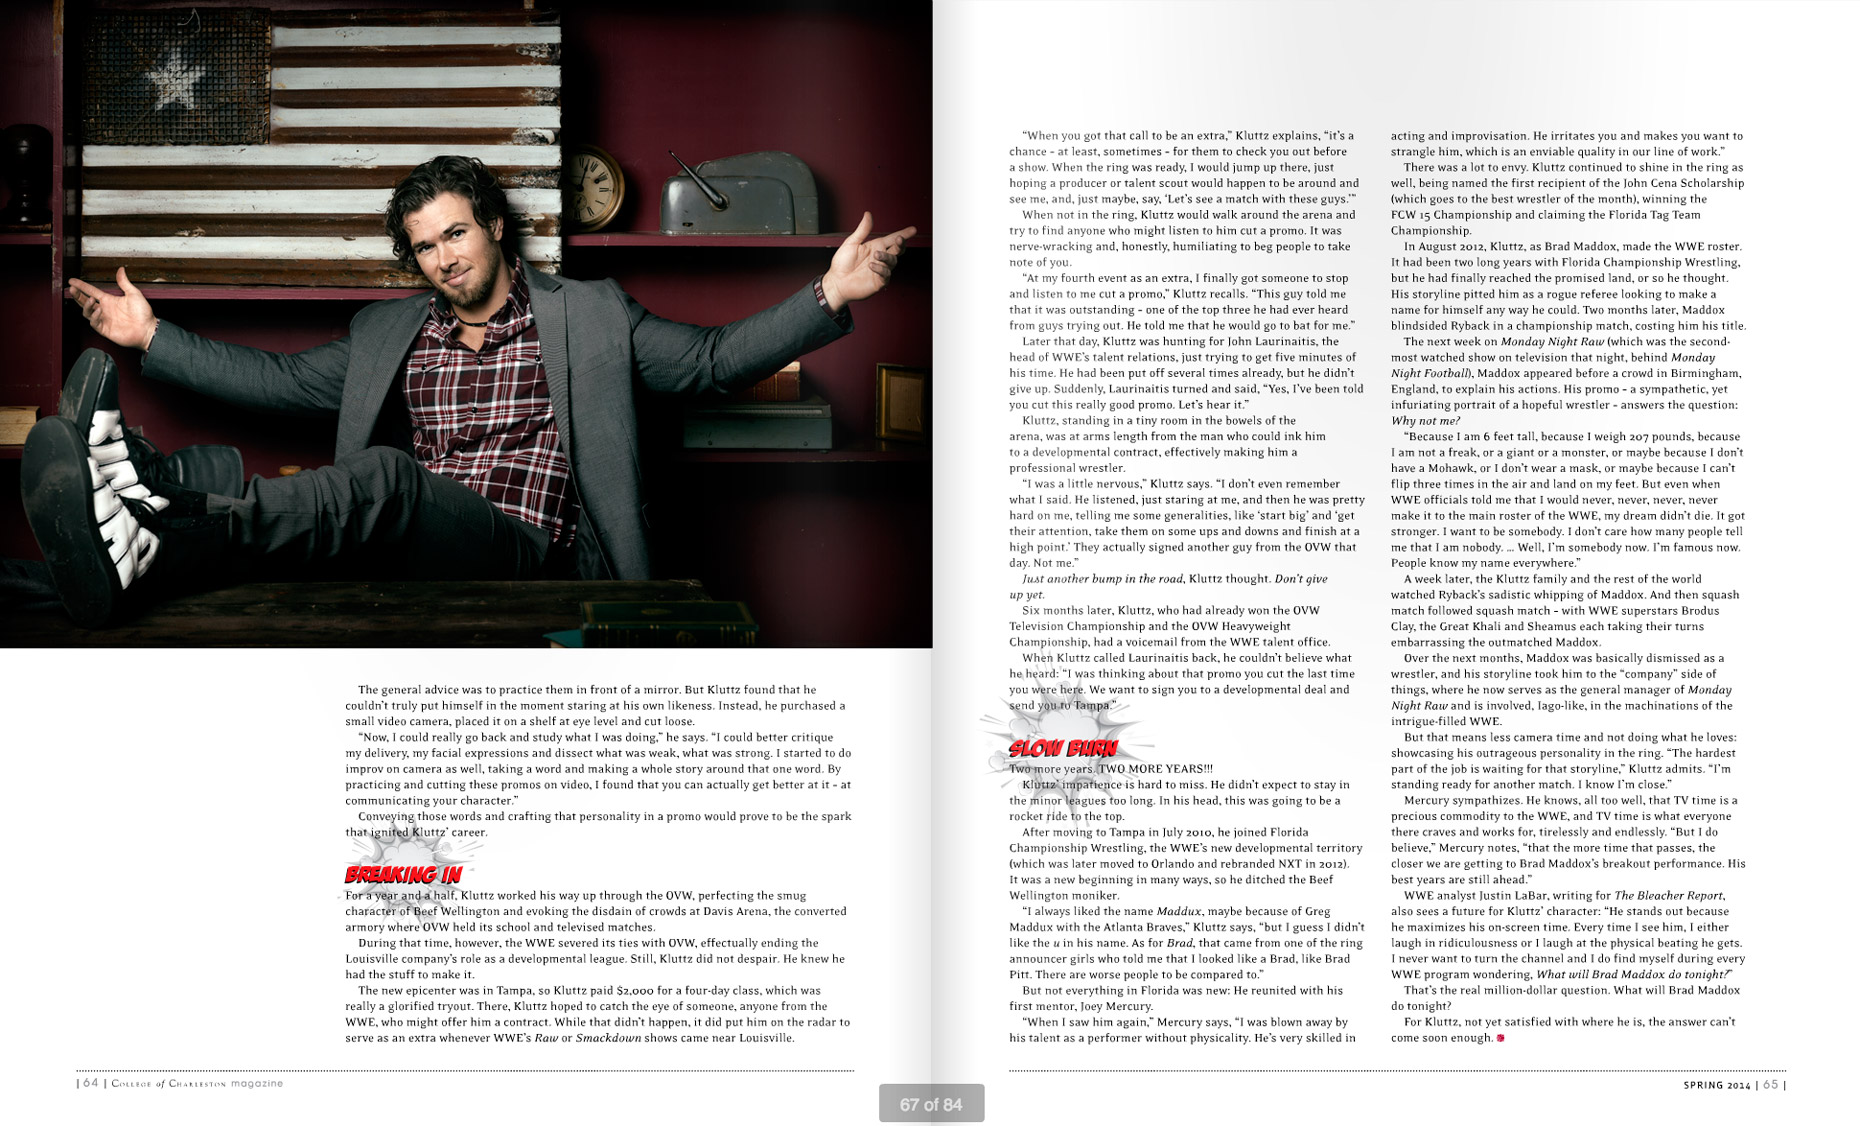 College Of Charlston Magazine - INTO THE RING - SPRING 2014 - Spread 2: Brad Maddox -  photographer Jason Myers